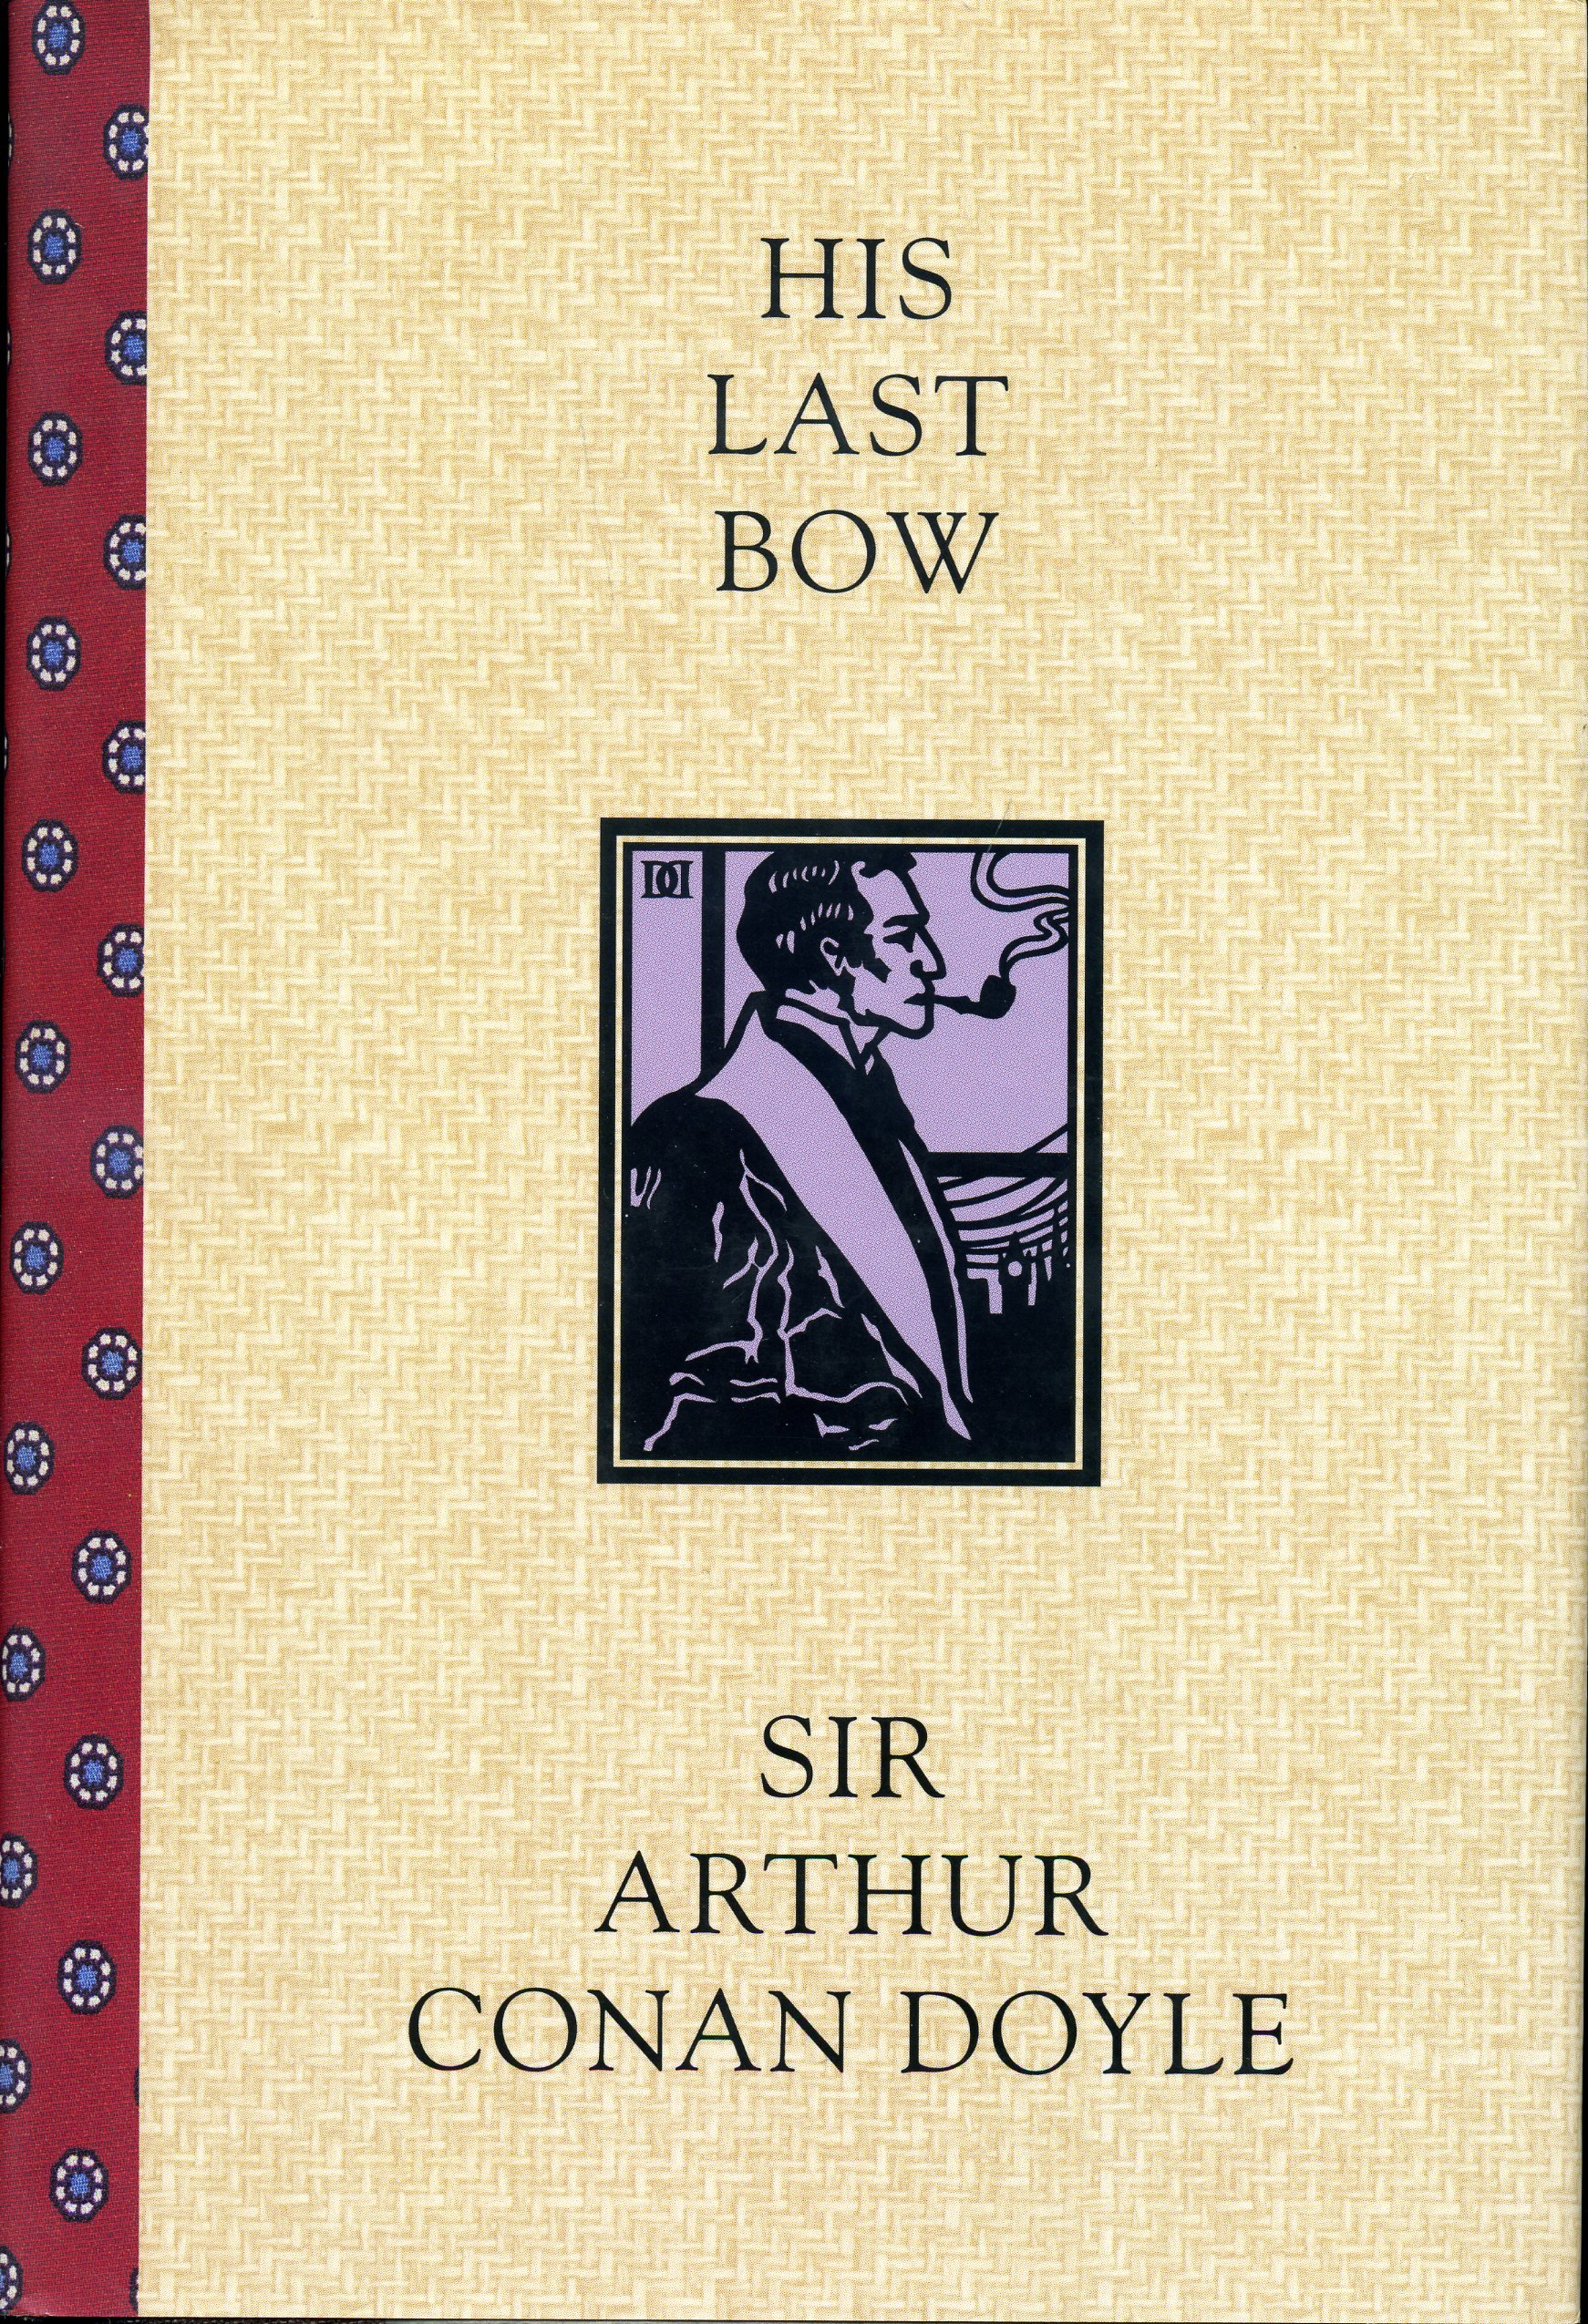 His Last Bow, Sir Arthur Conan Doyle